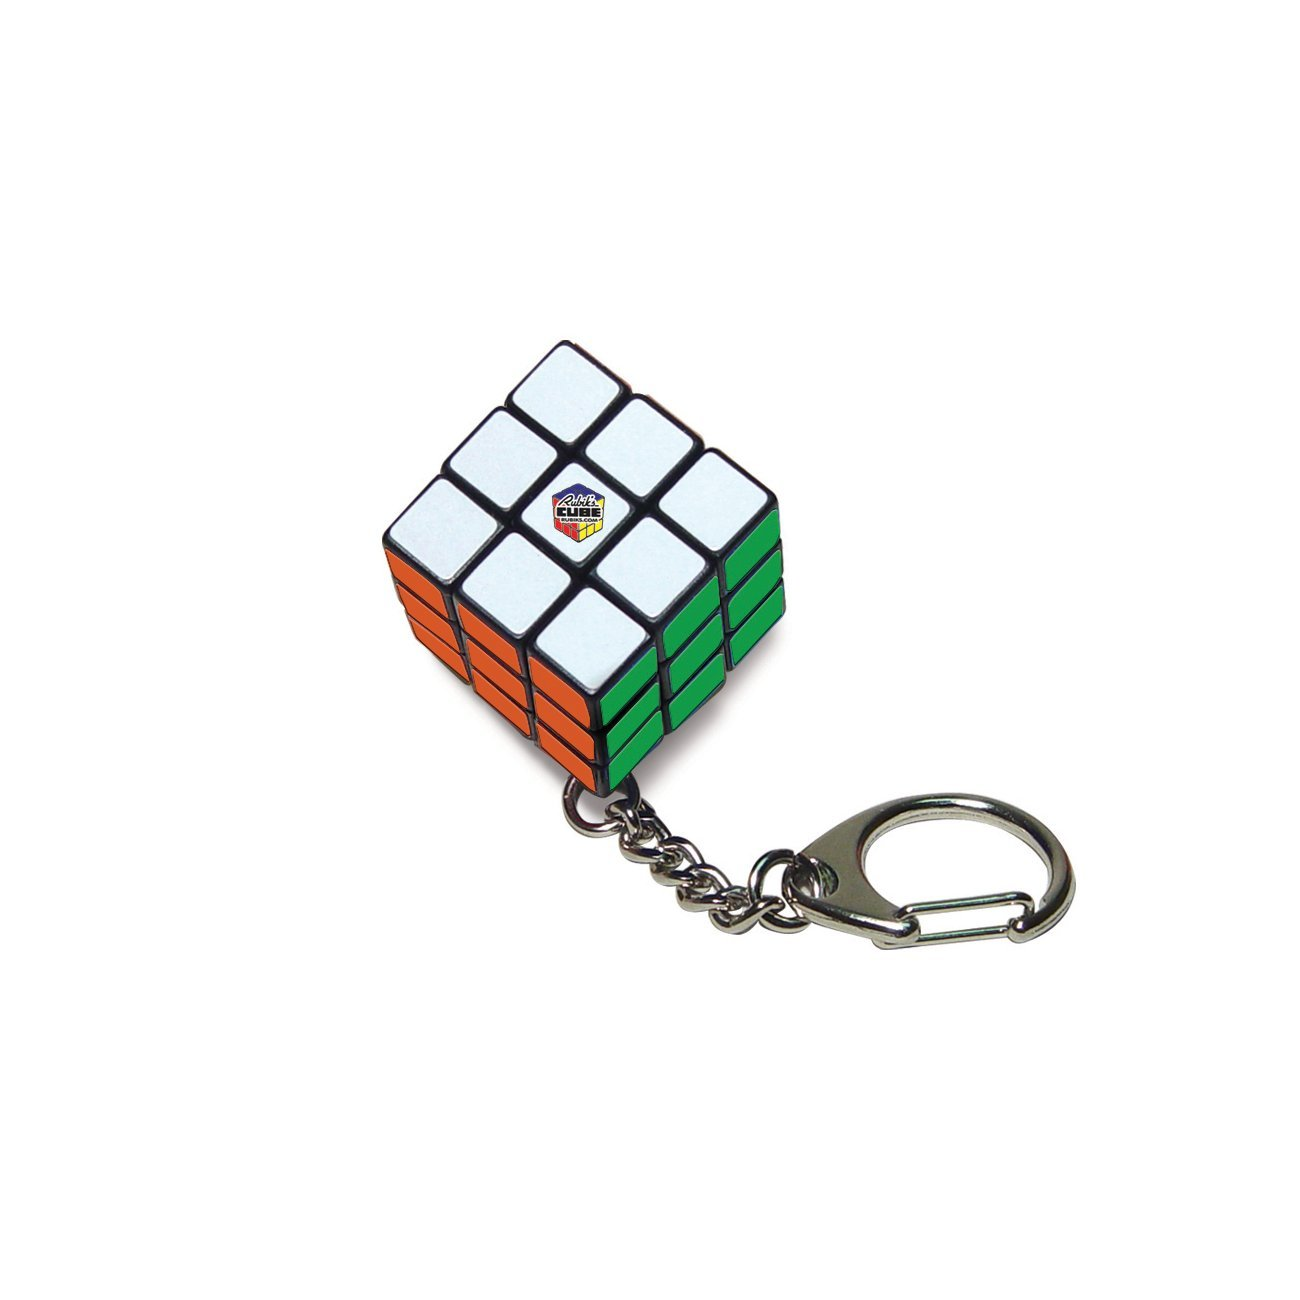 Rubik's Key Ring Cube Winning Moves 5016 Accessory Consumer Accessories